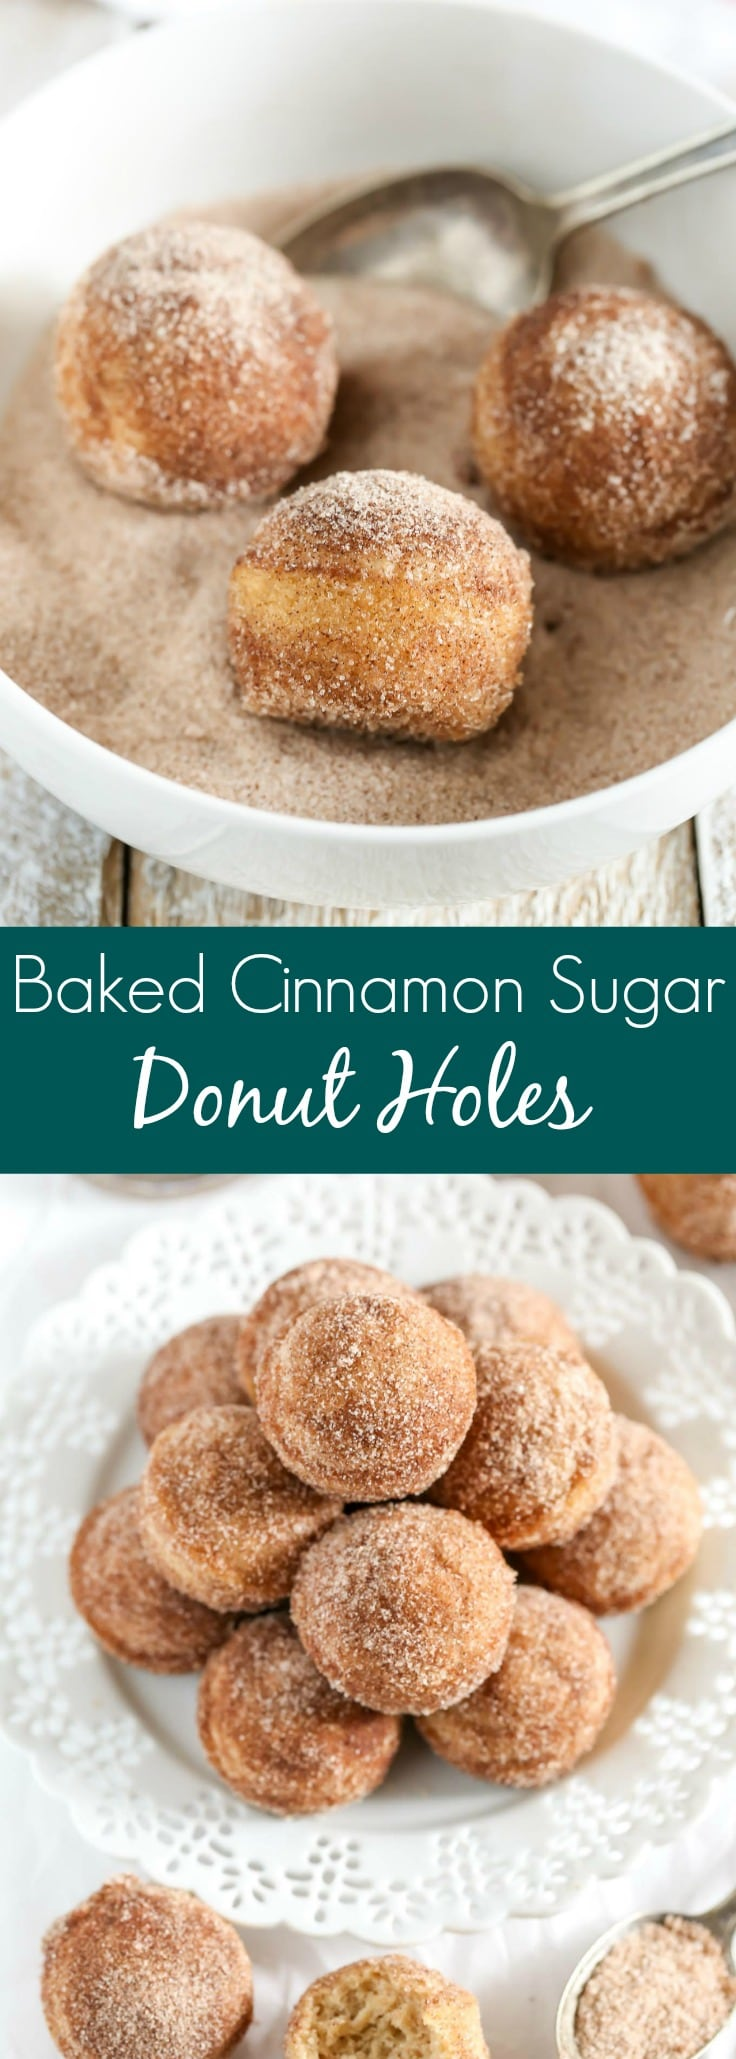 Baked Cinnamon Sugar Donut Holes Pinterest Collage